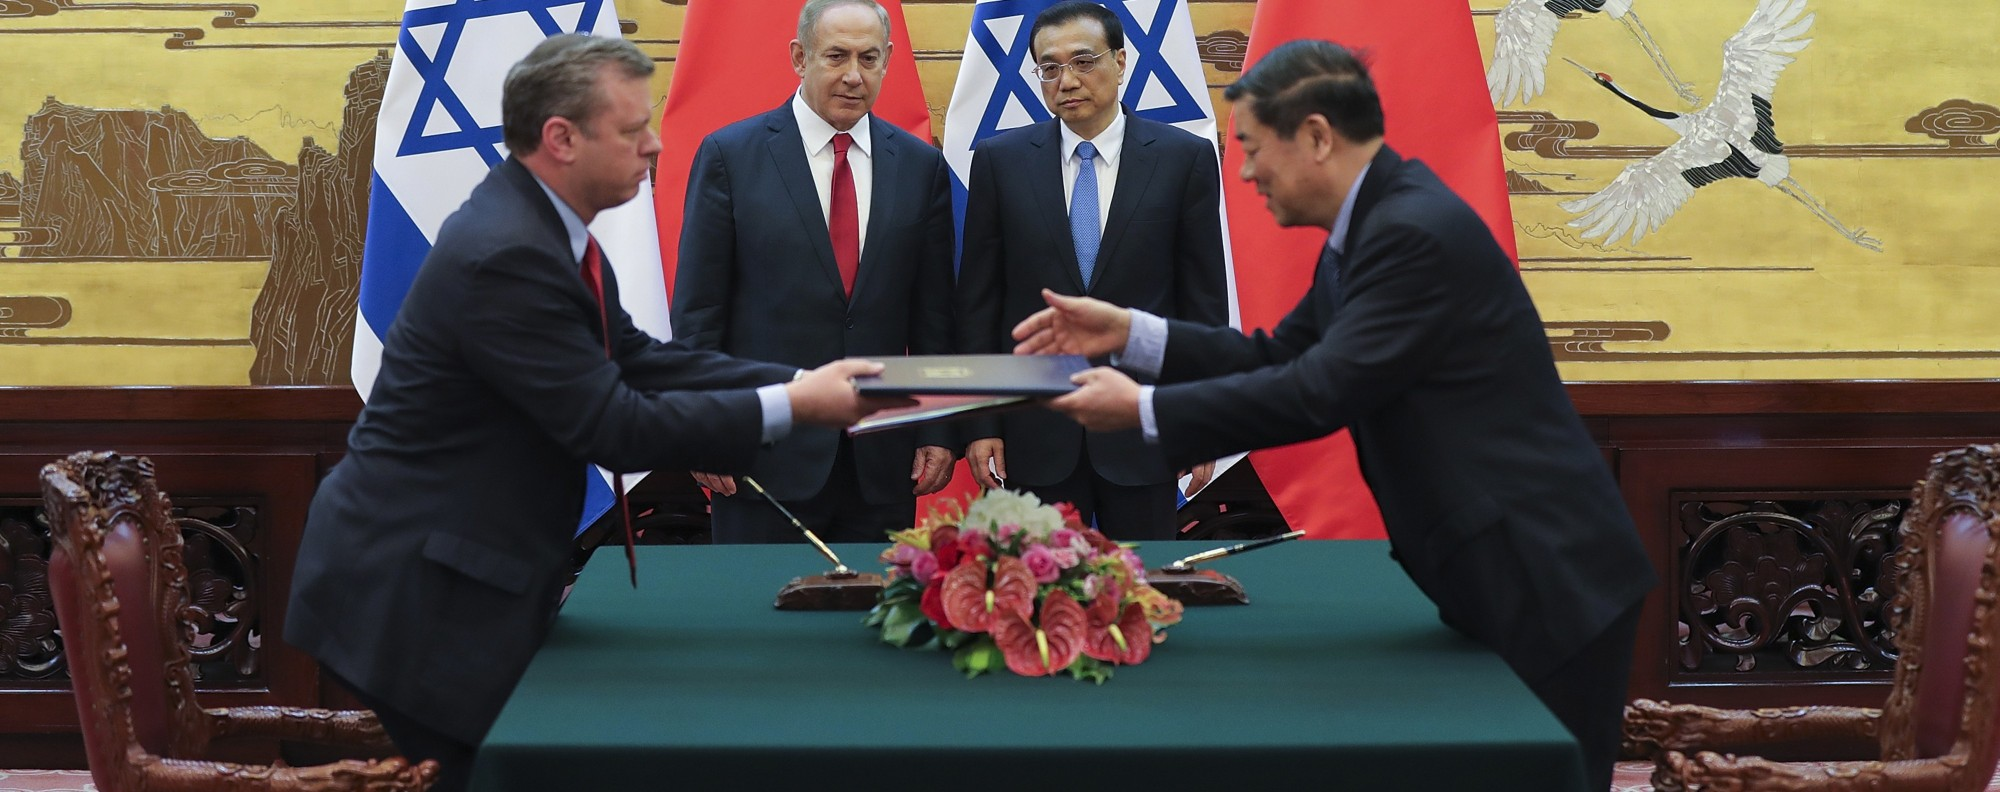 Netanyahu and Li at a signing ceremony in Beijing. Photo: AP